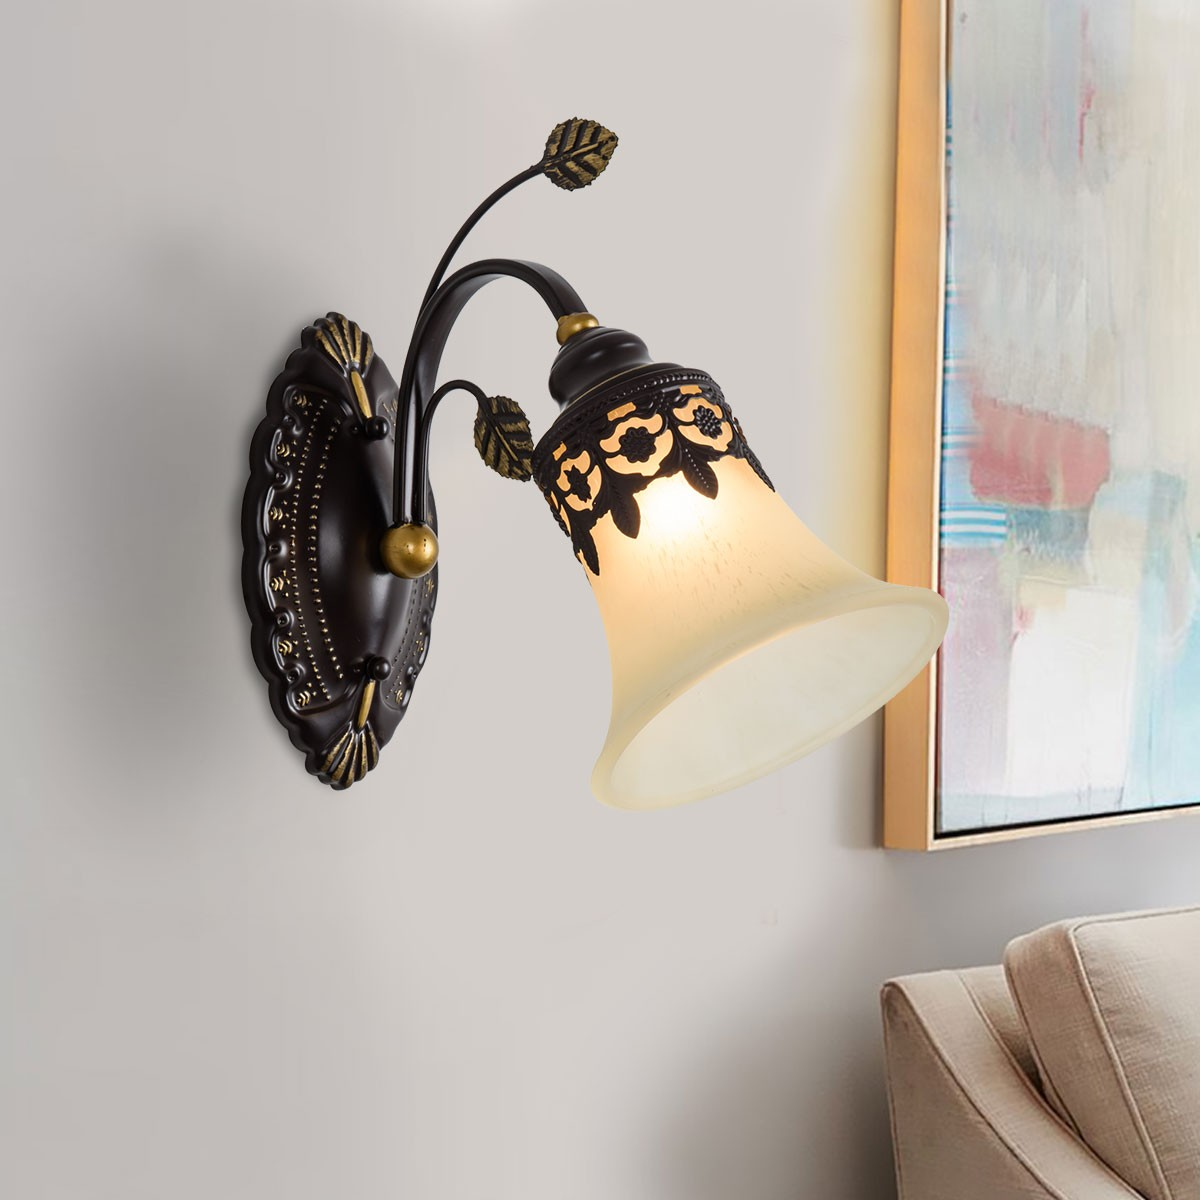 1-Light Black Wrought Iron Wall Sconce with Glass Shades (DK-1029-1W)